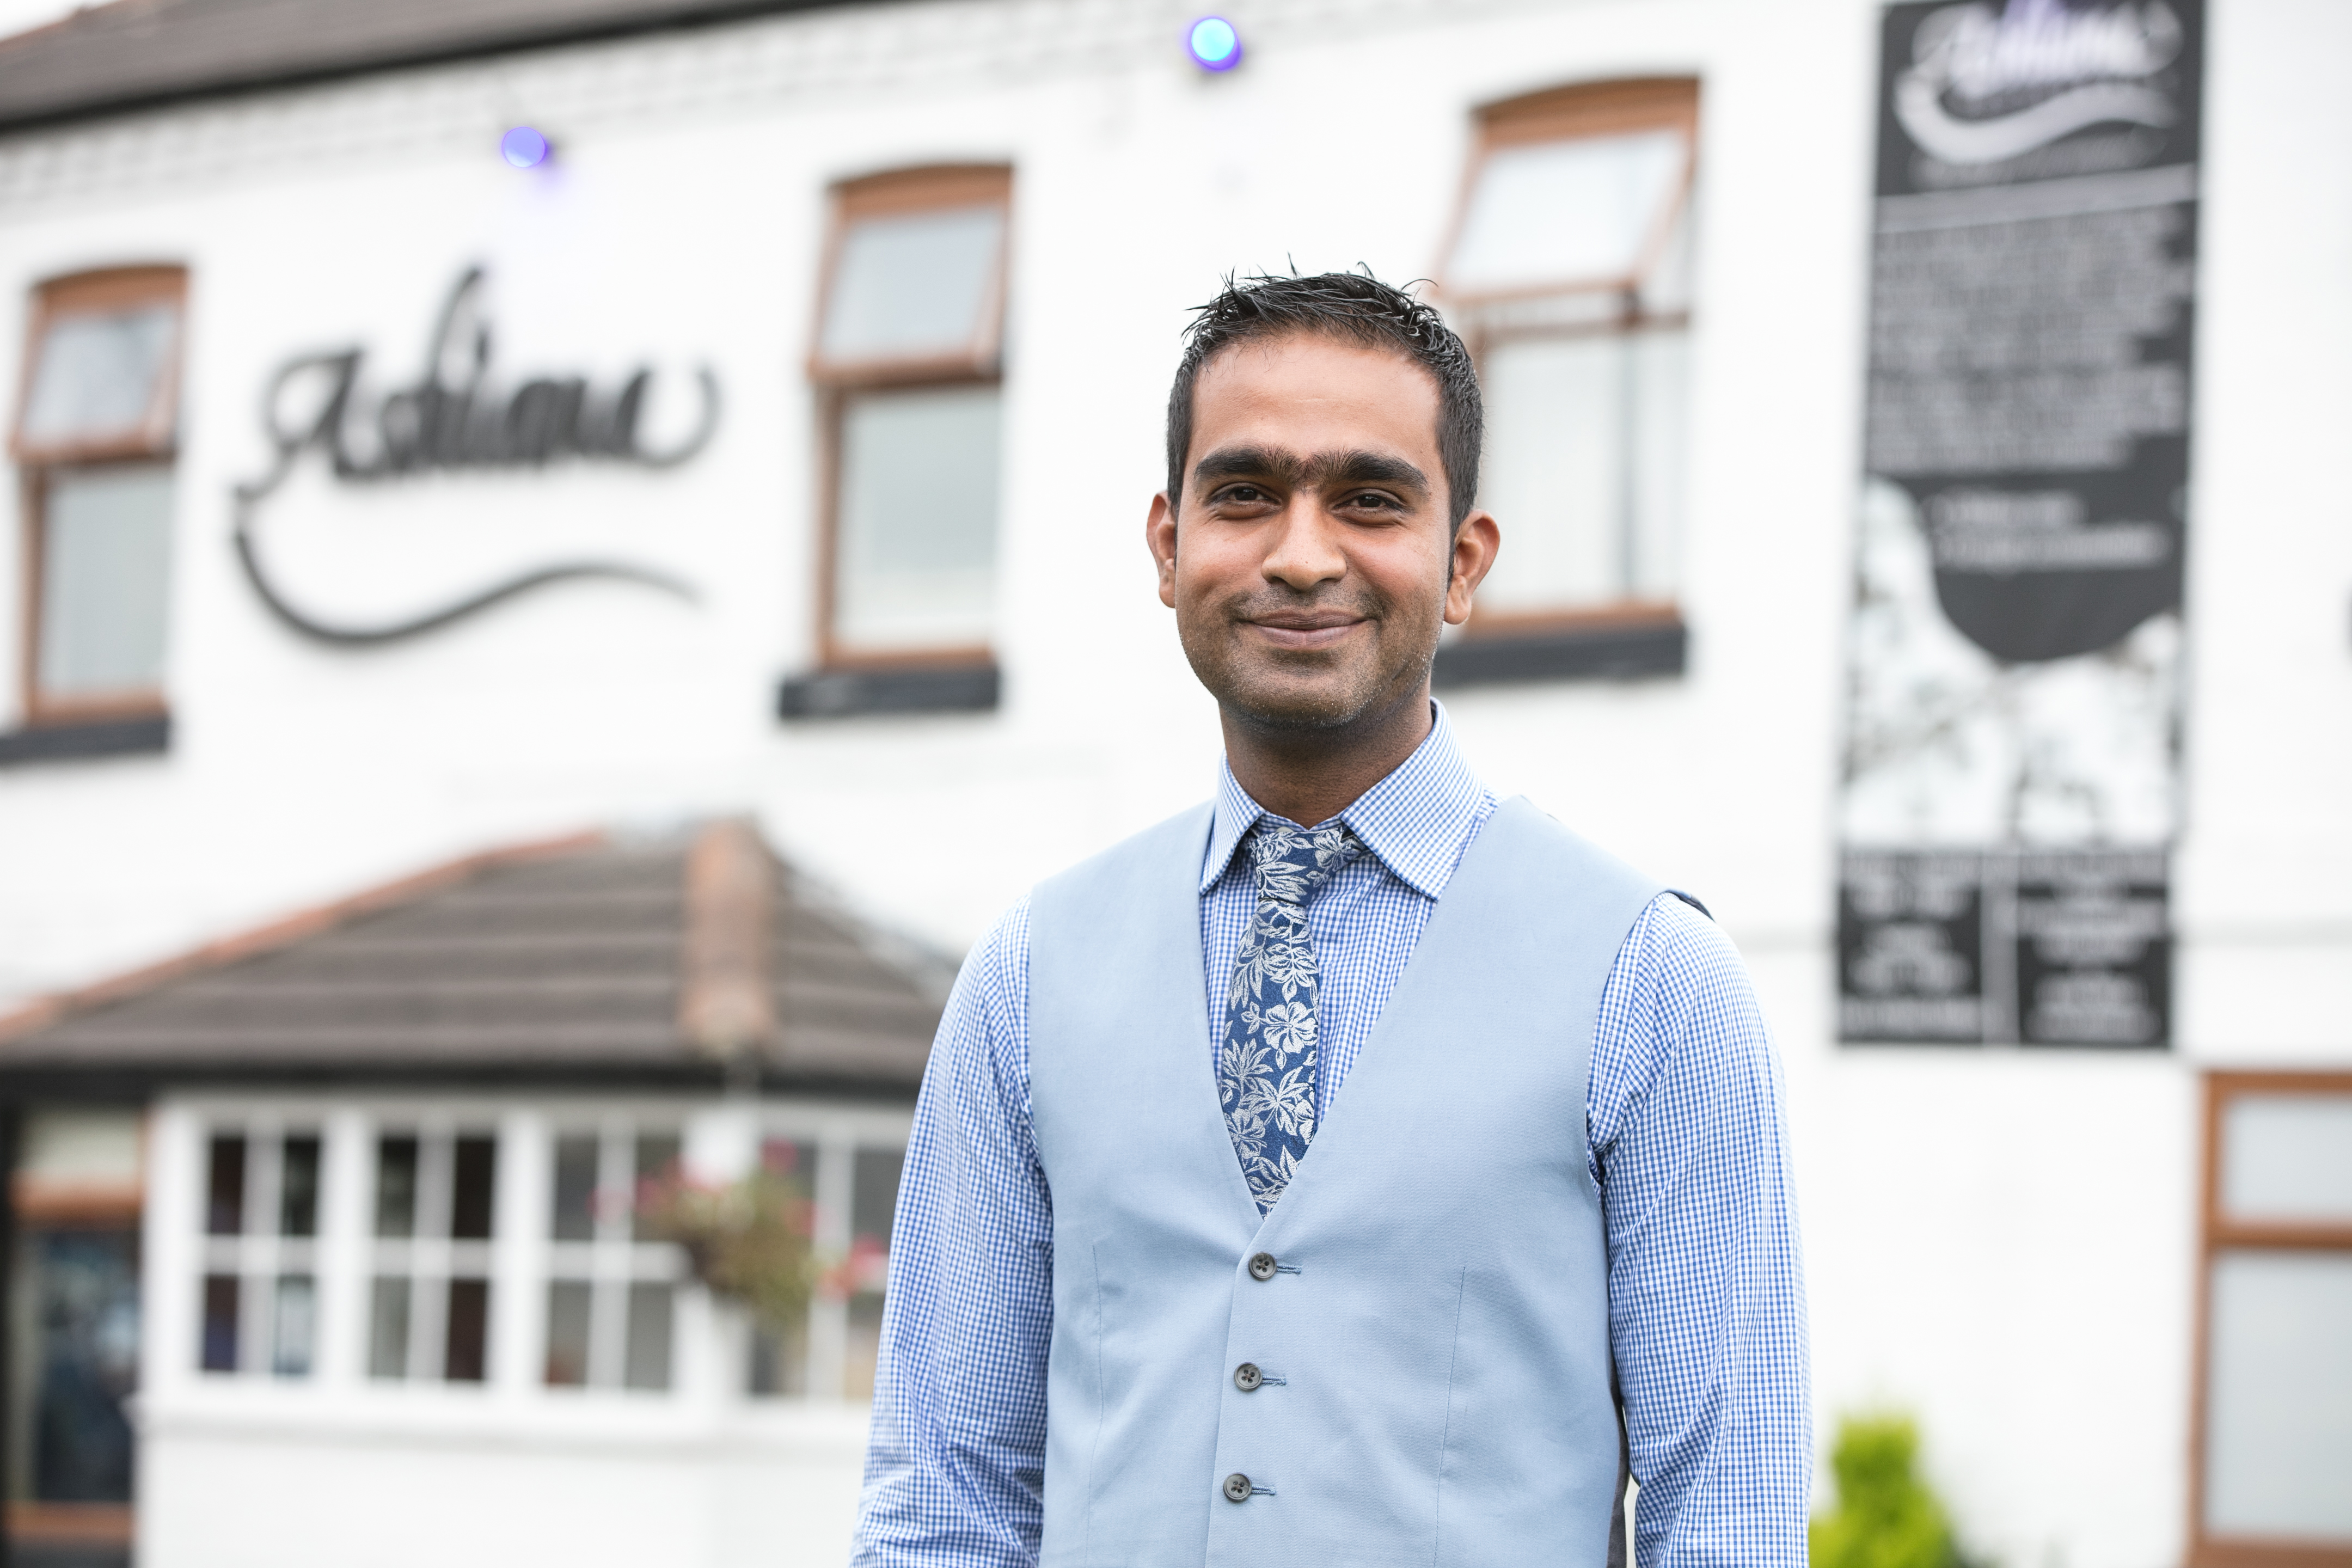 Newark Indian restaurant shortlisted for major national food awards